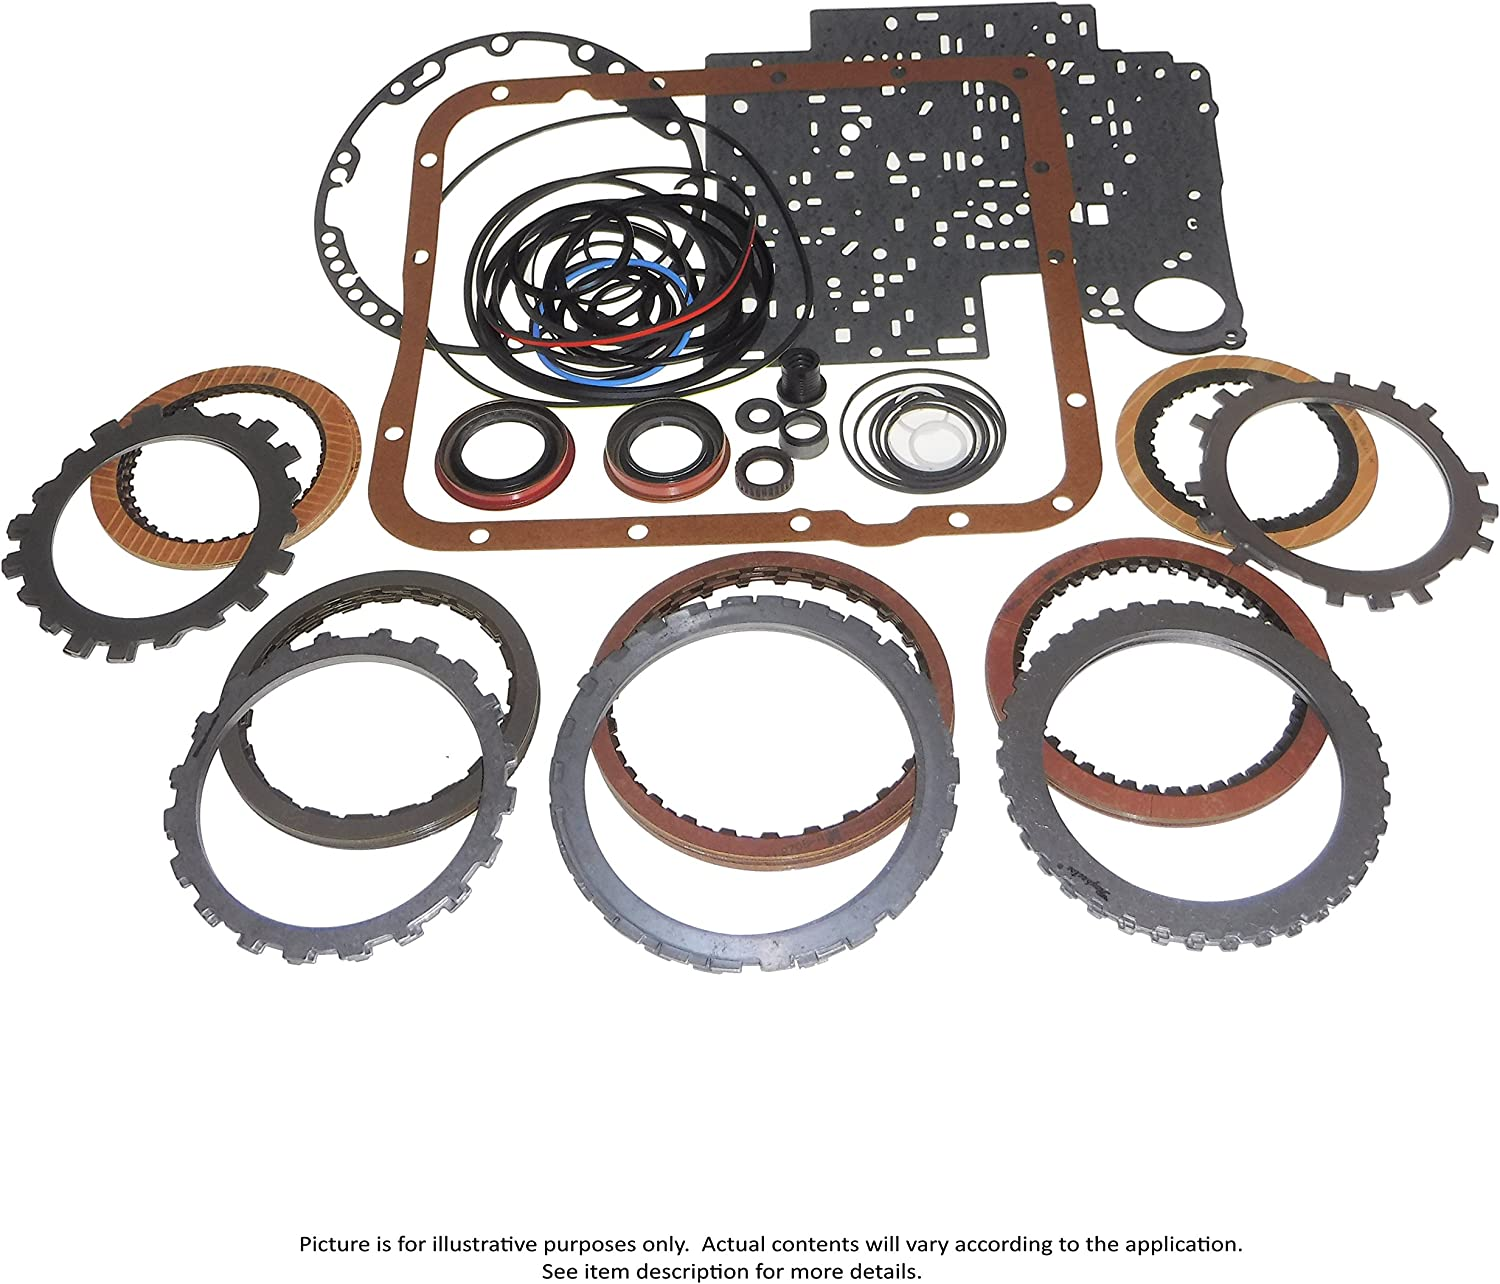 Transmaxx Transmission Rebuild Master Kit With Steels A340H 85-94